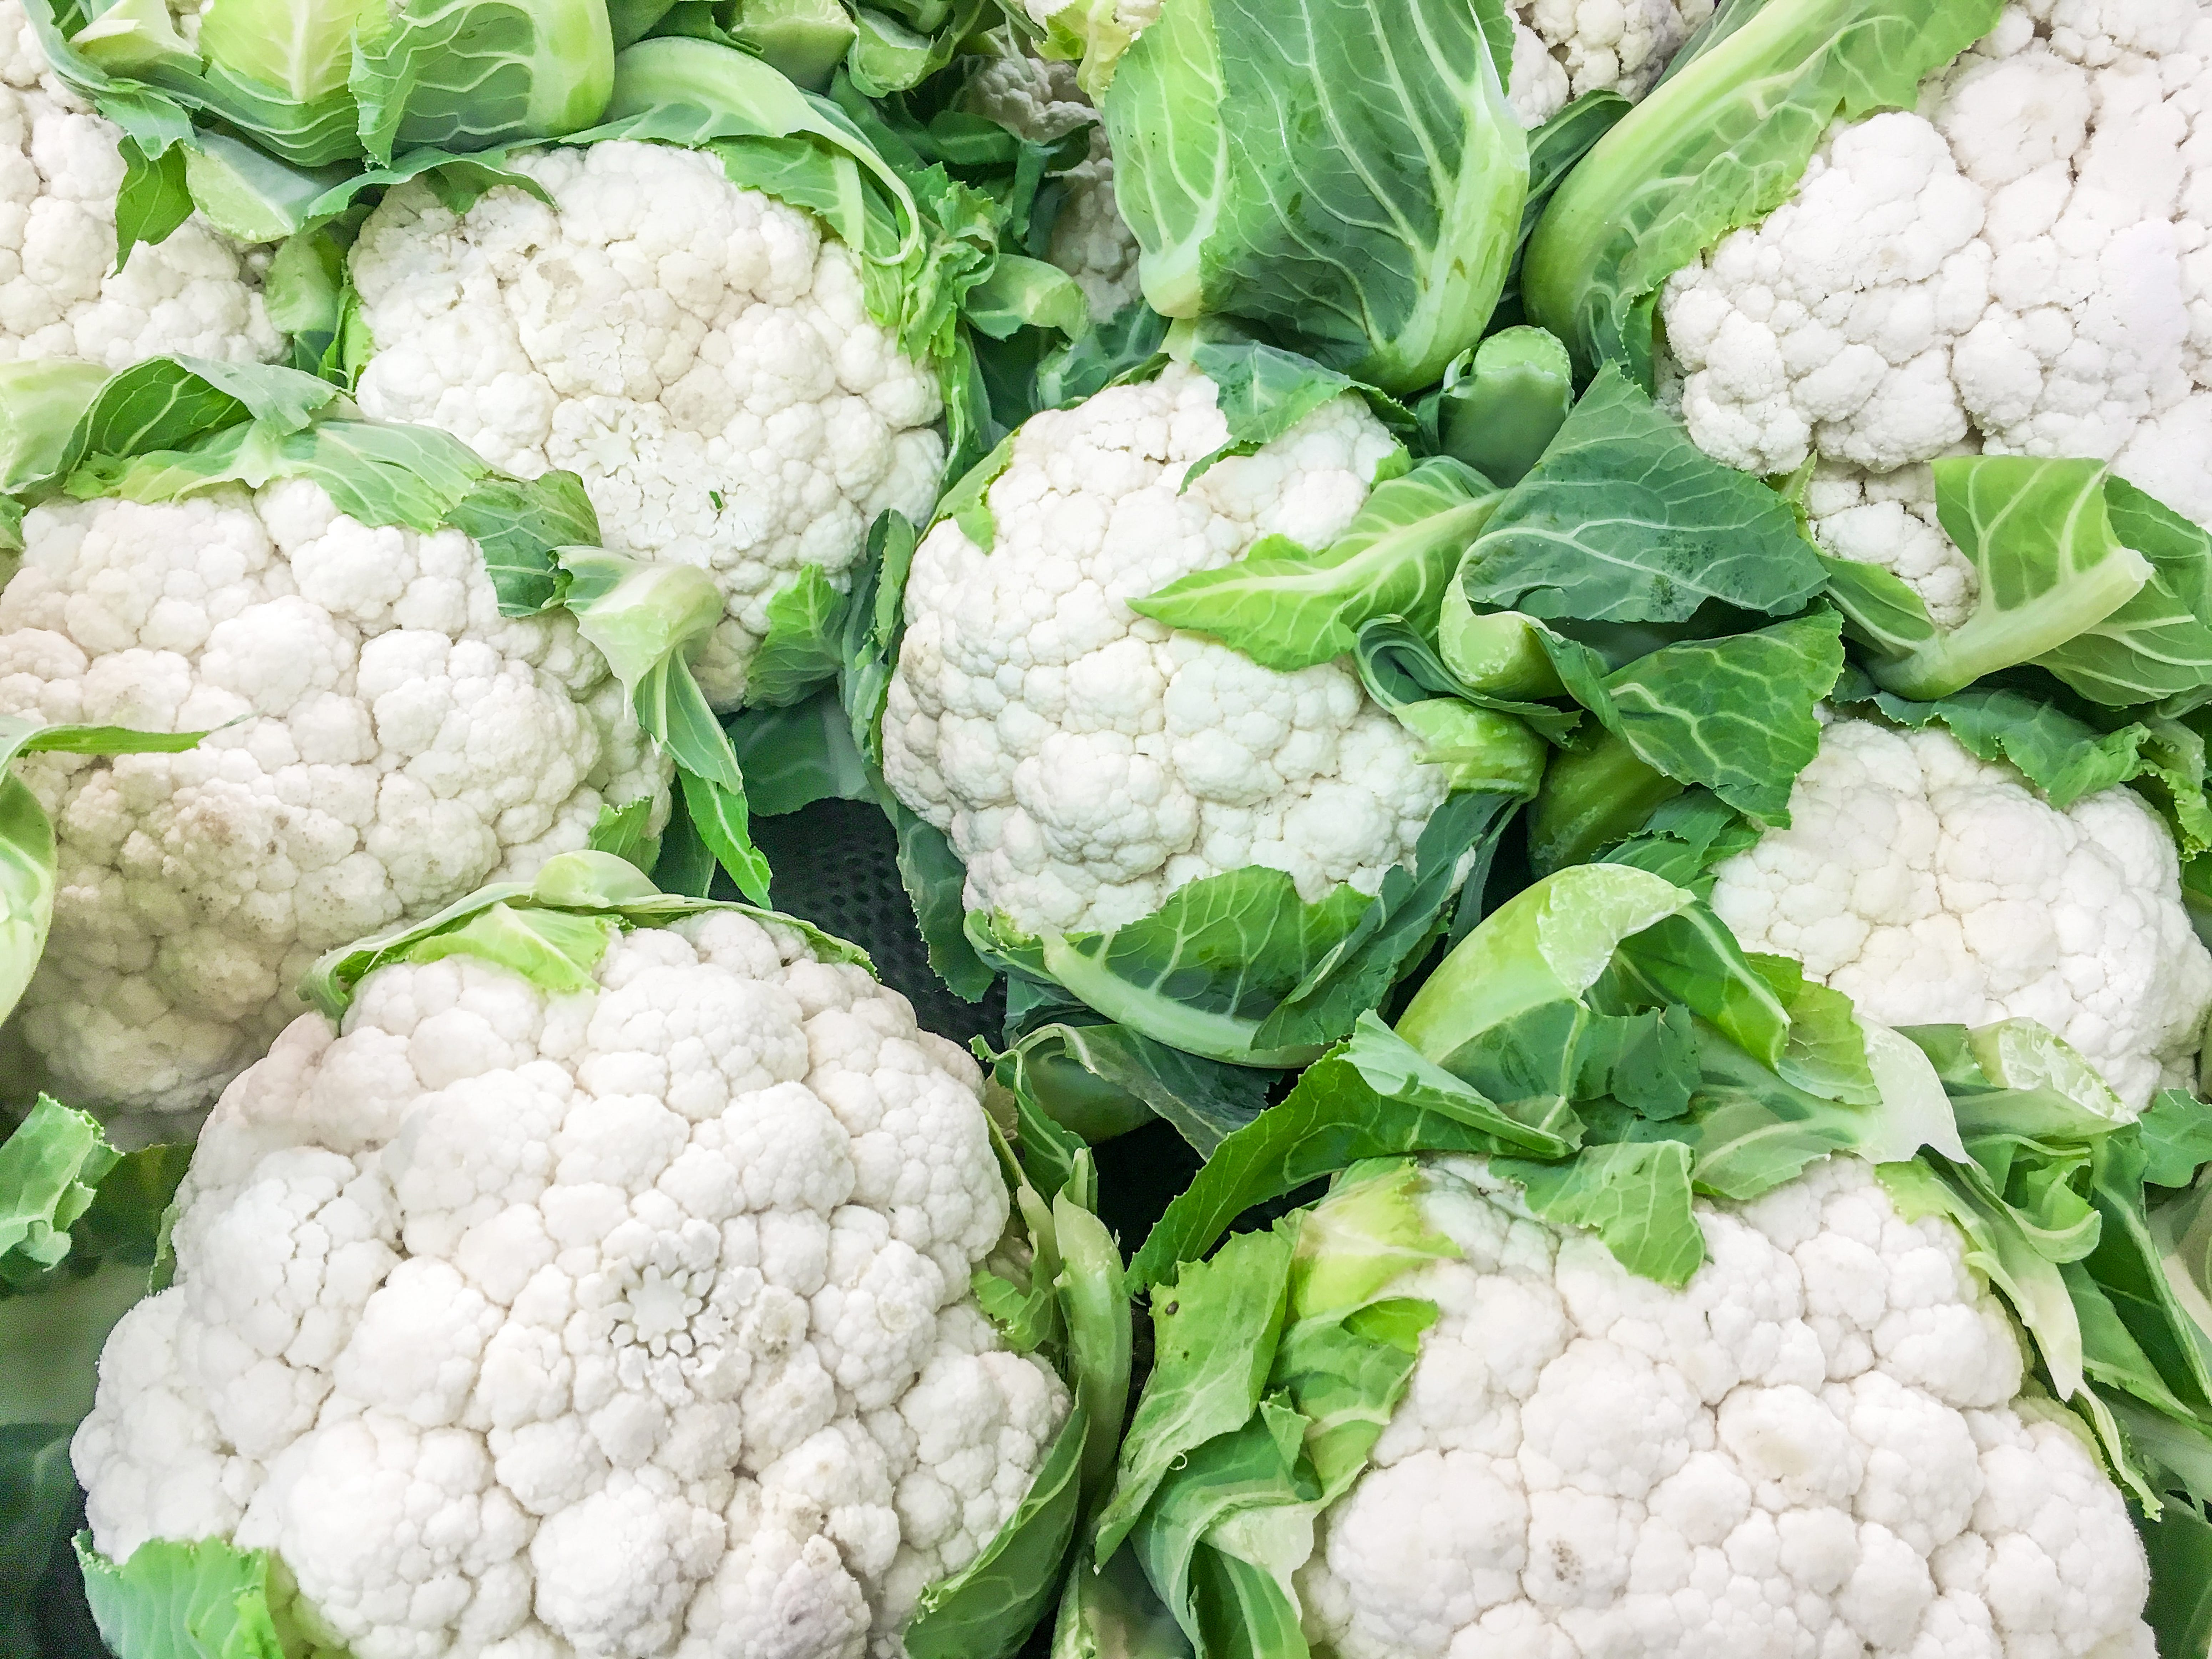 Cauliflower recall hits NJ over E. coli fears